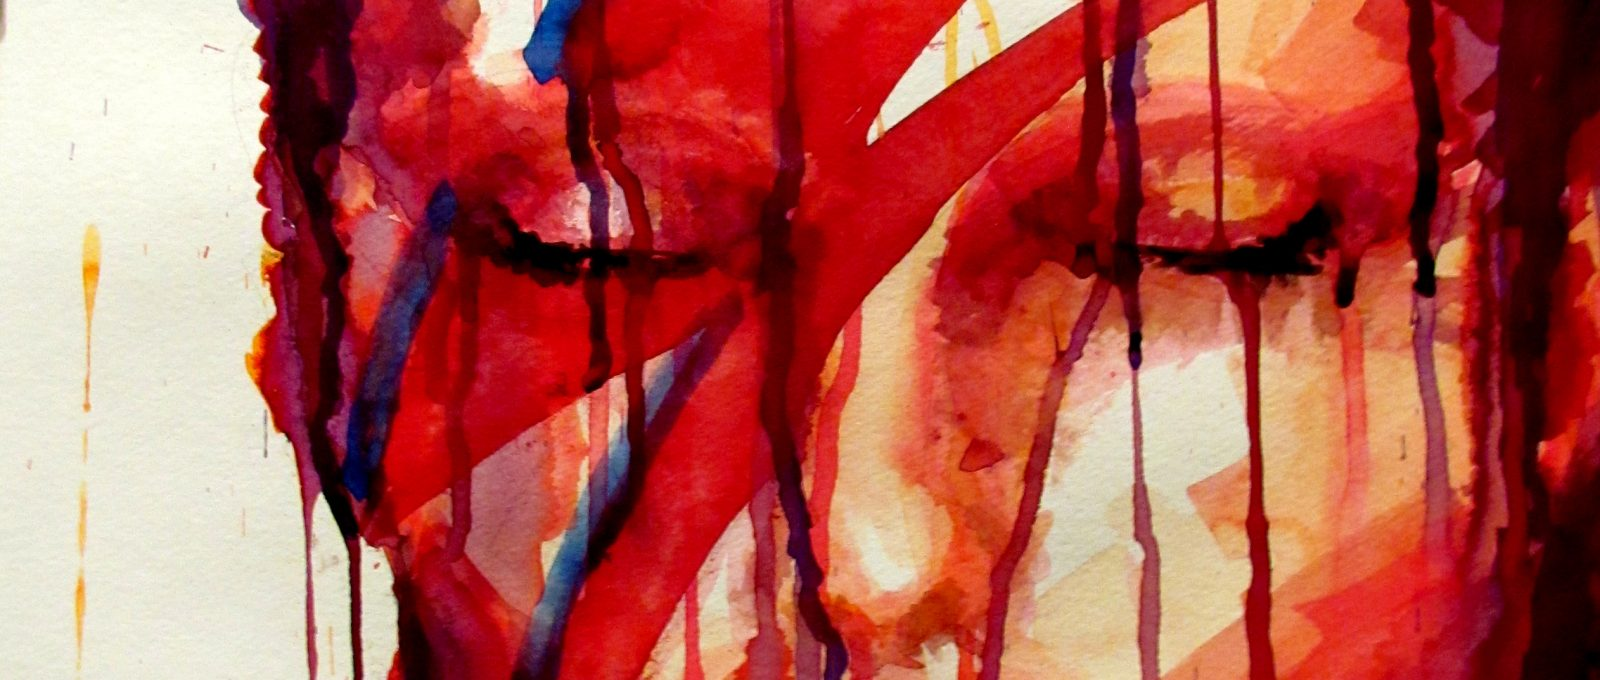 Abstract watercolor painting of David Bowie with his signature lightning bolt face paint.